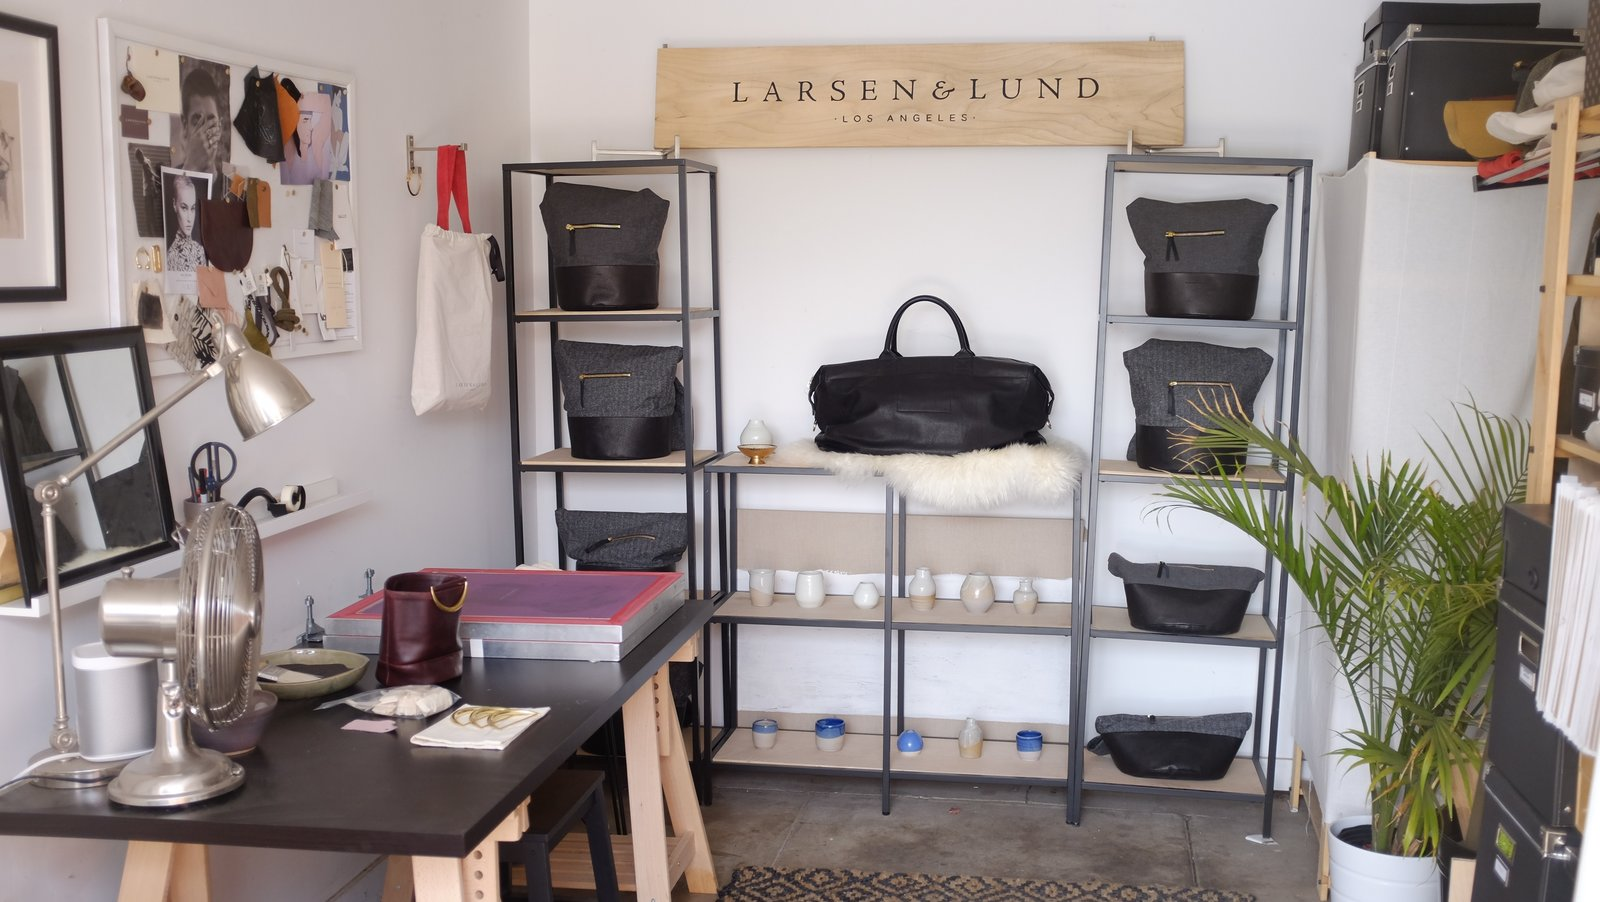 Fashion designer Lindsey Lund Mortensen's half of the studio some of her creations as well as a inspiration board.  Photo 4 of 7 in The L.A. Home of Song Exploder's Hrishikesh Hirway Is Barely Larger  Than a Music Box